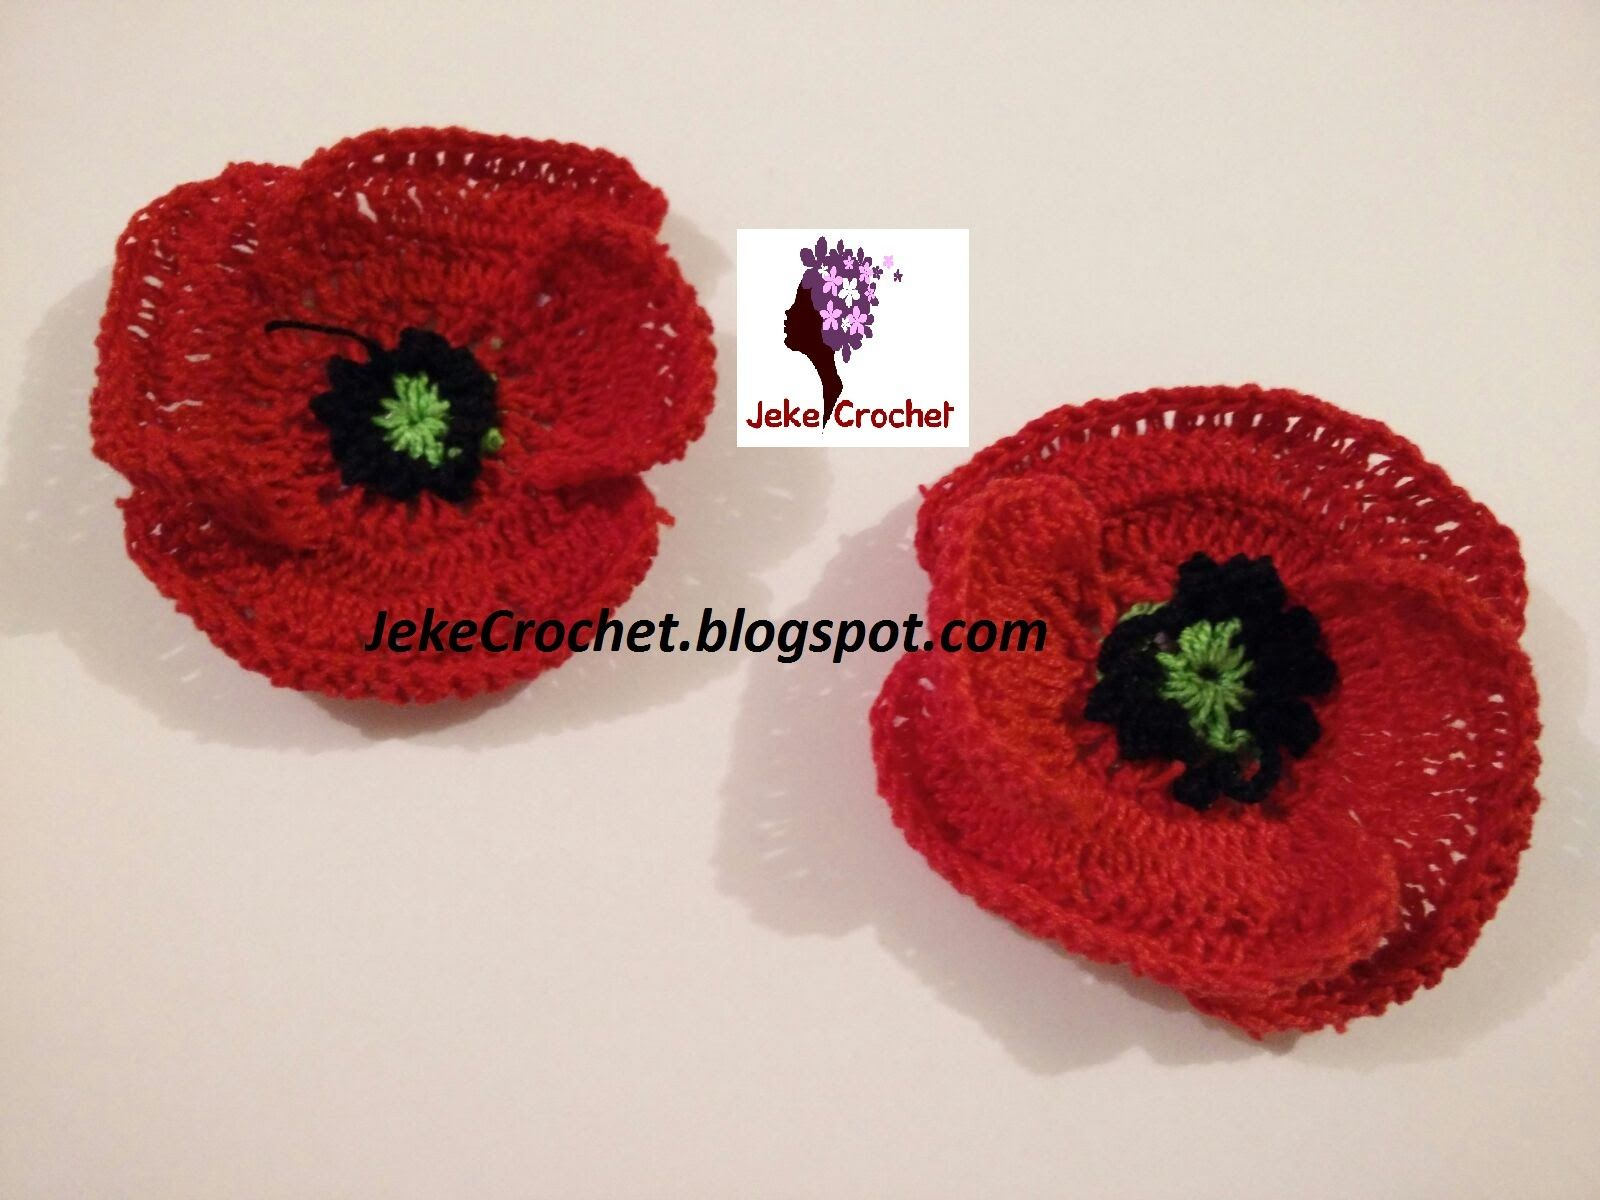 Amapola - Papavero - Poppy Flower (modelo 2) - Crochet- Ganchillo ...